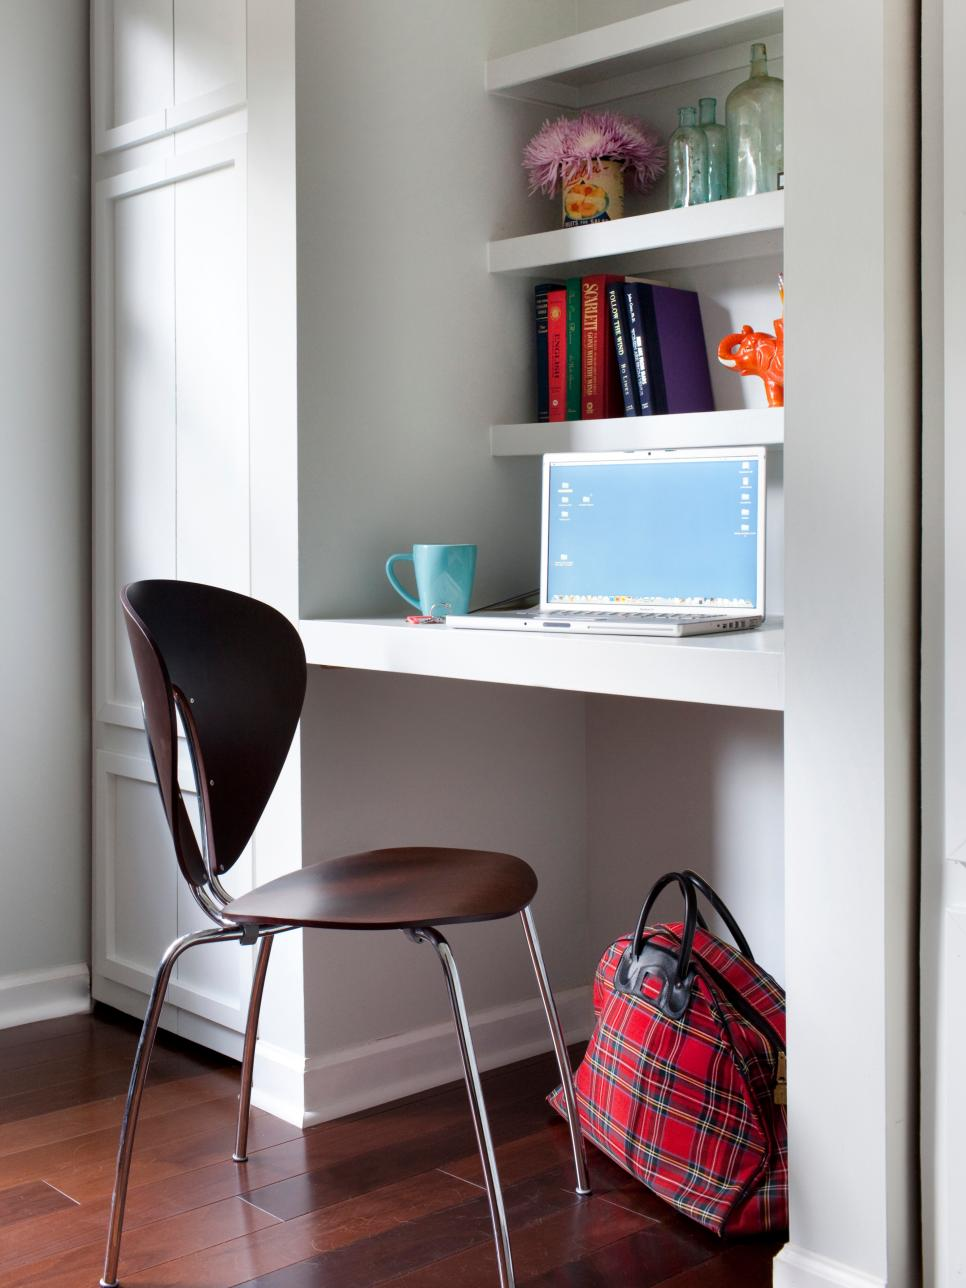 10 Smart Design Ideas for Small Spaces | HGTV